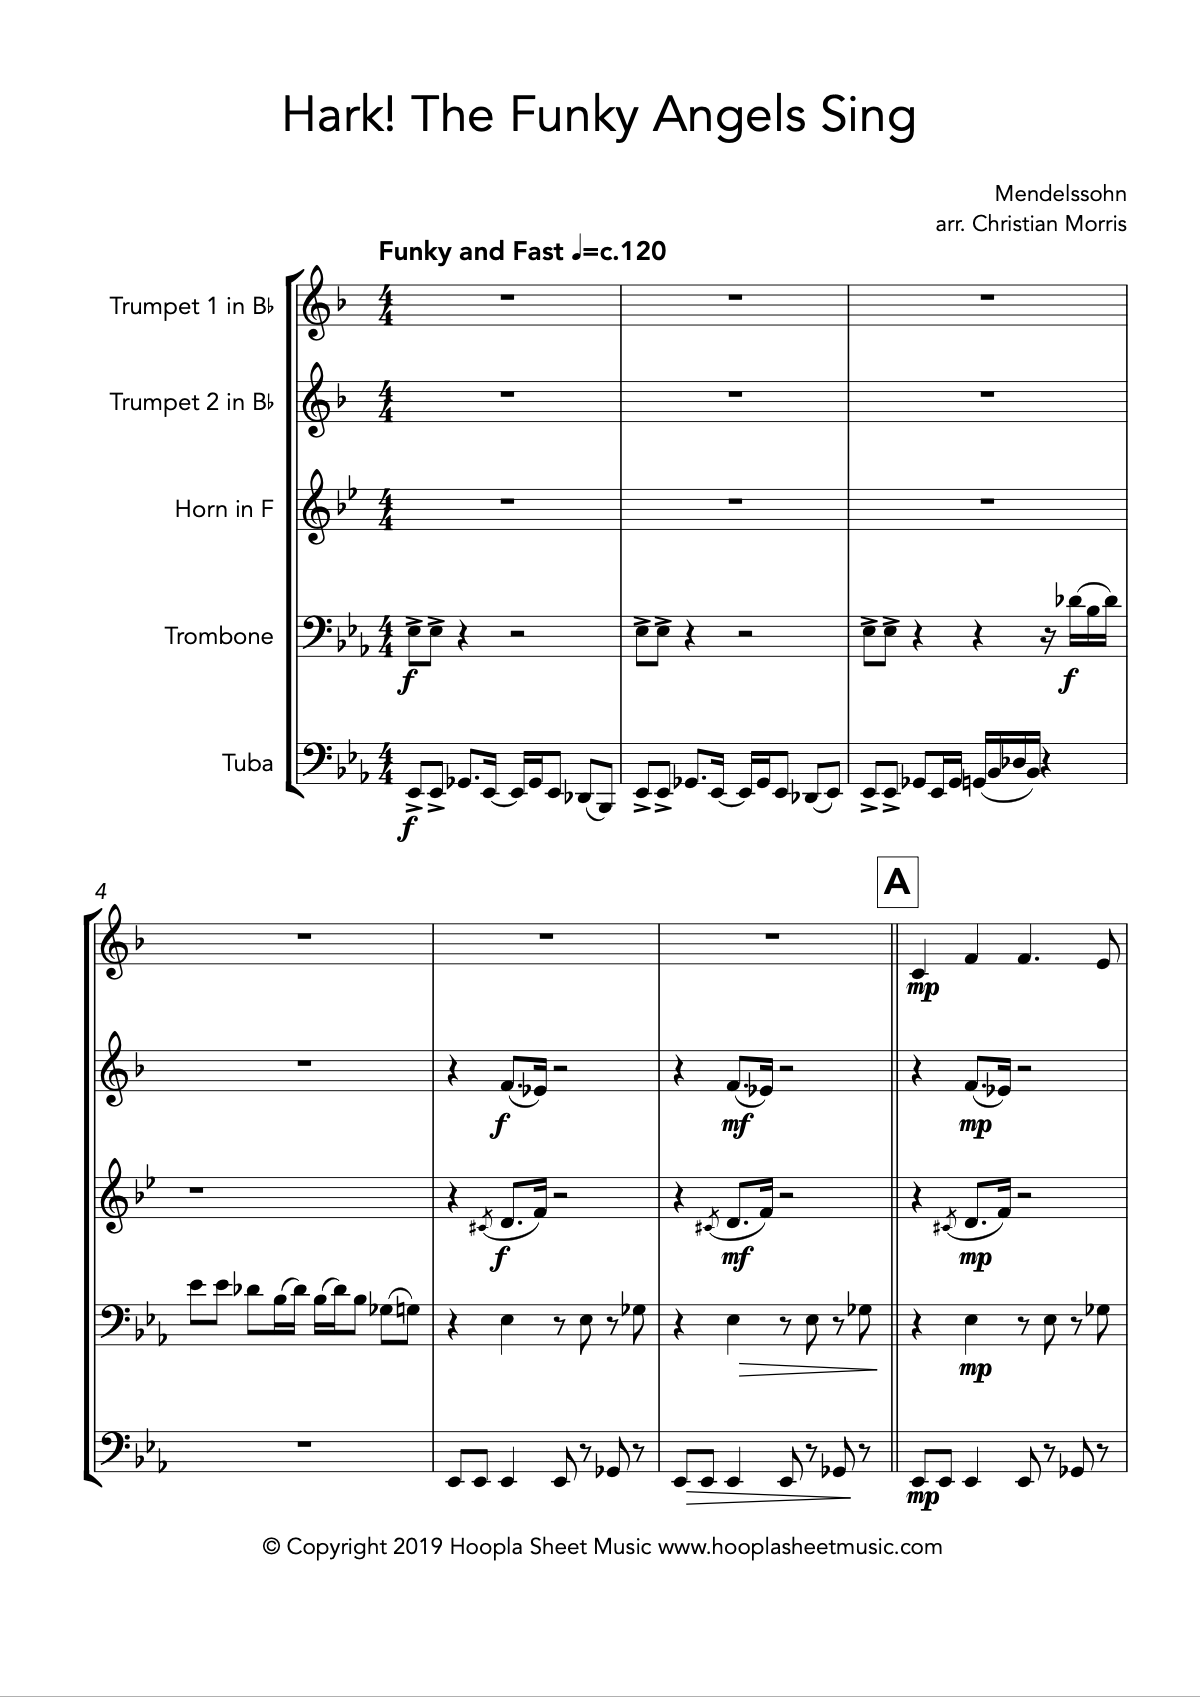 Hark the Funky Angels Sing (Brass Quintet)